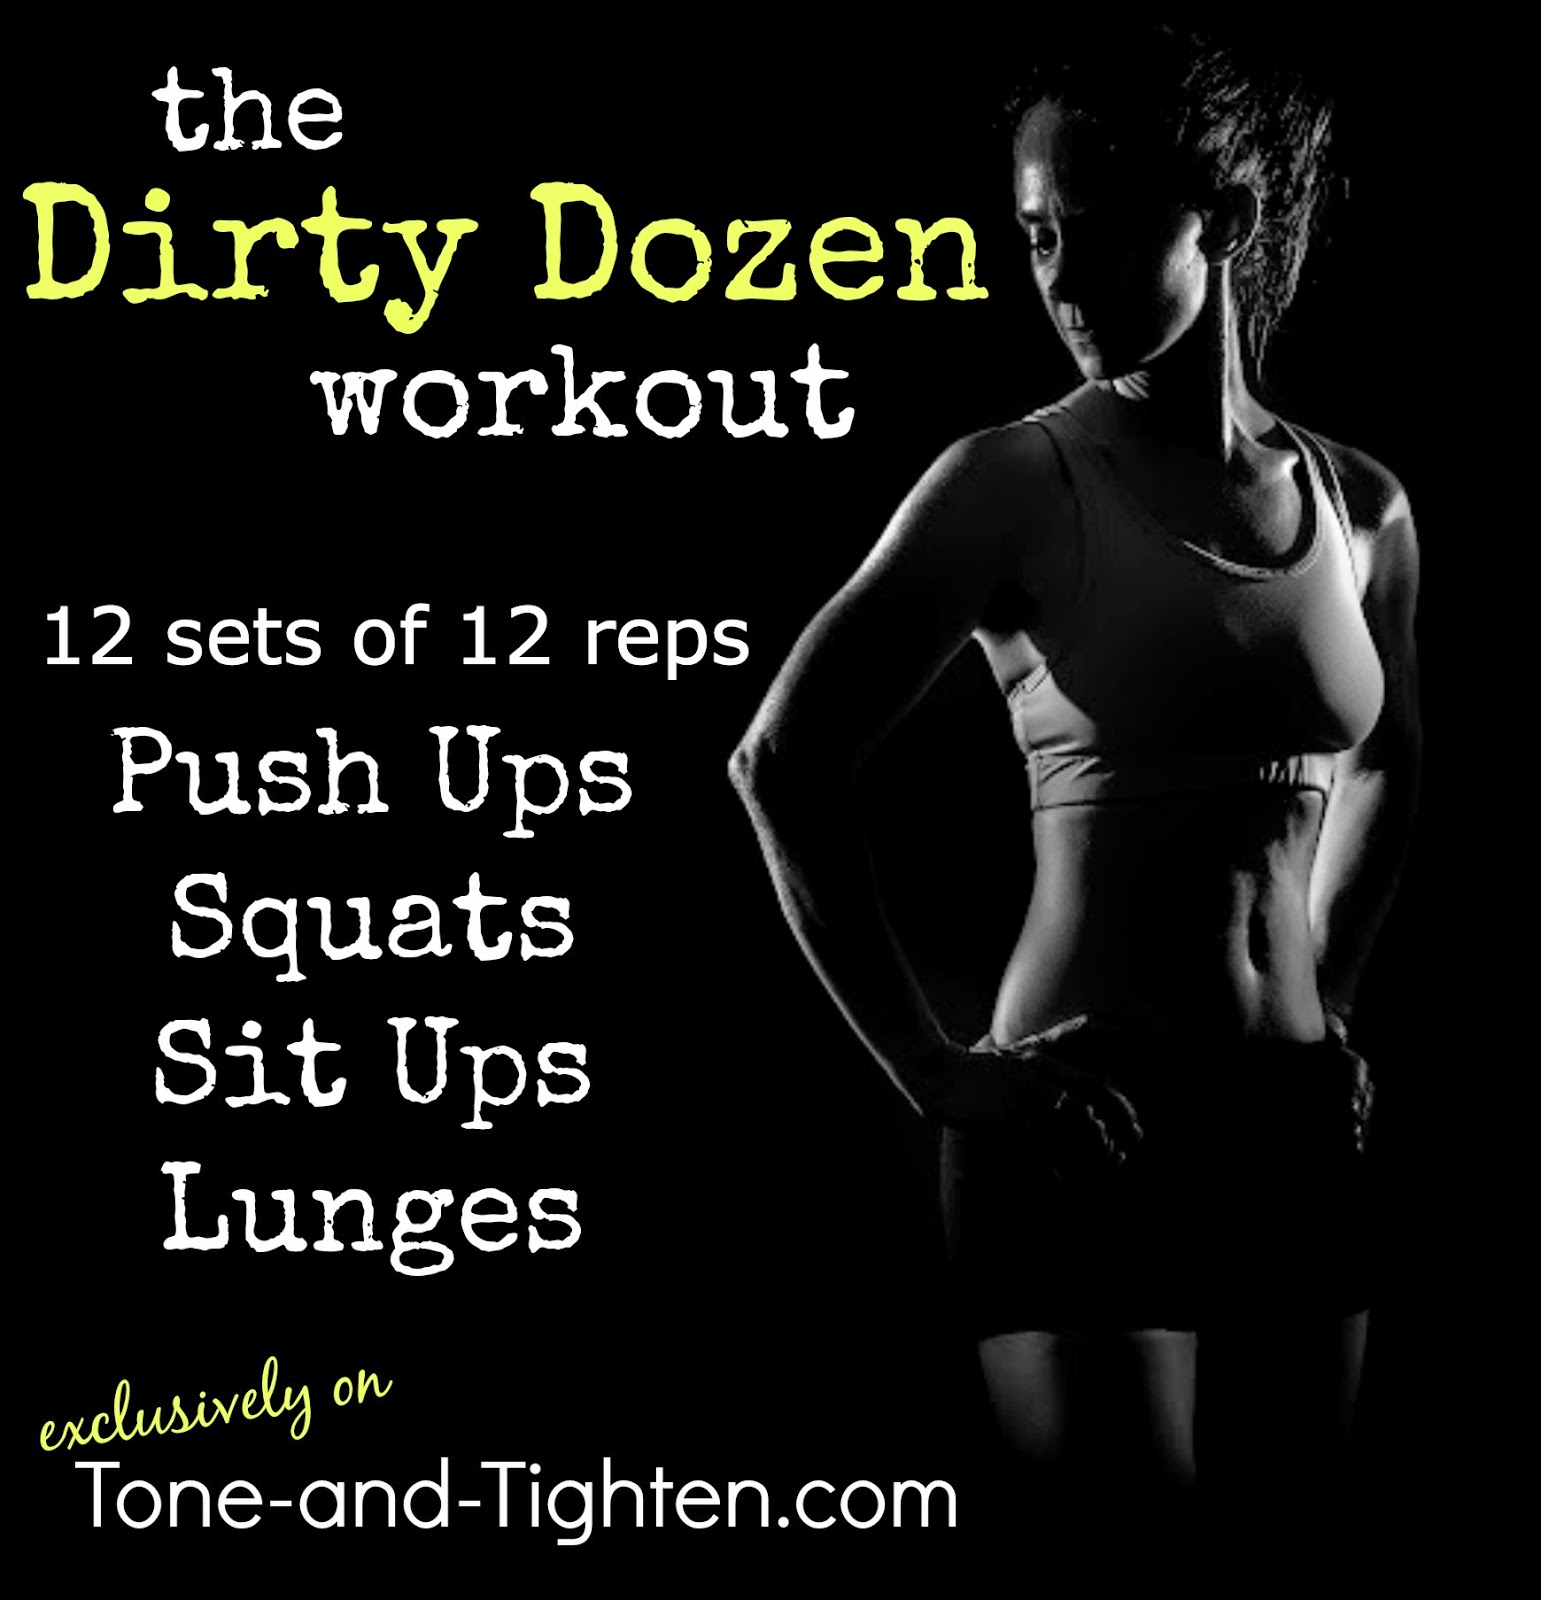 http://tone-and-tighten.com/2014/04/the-dirty-dozen-at-home-total-body-workout-from-tone-and-tighten.html